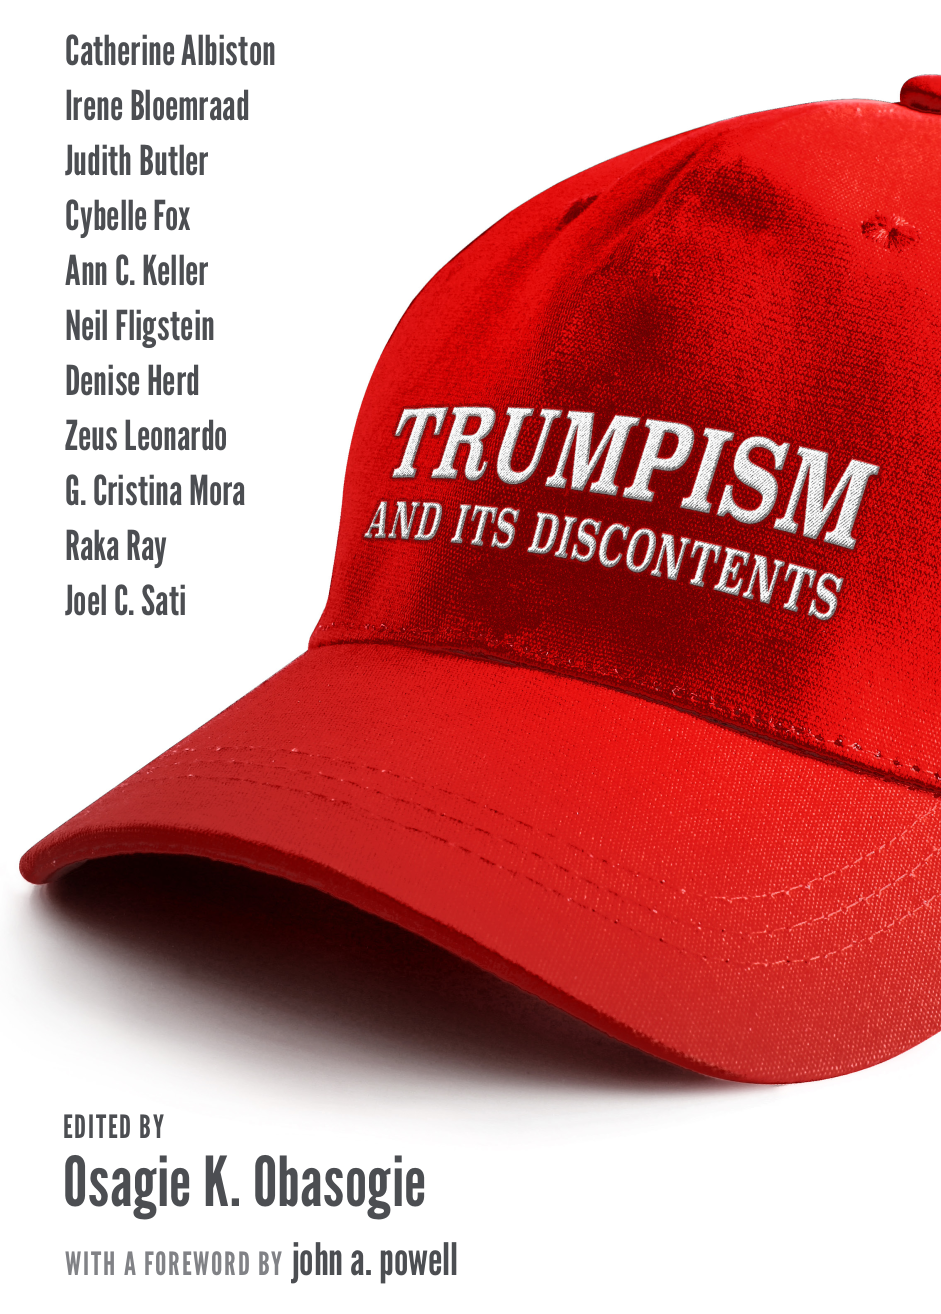 trumpism book cover image